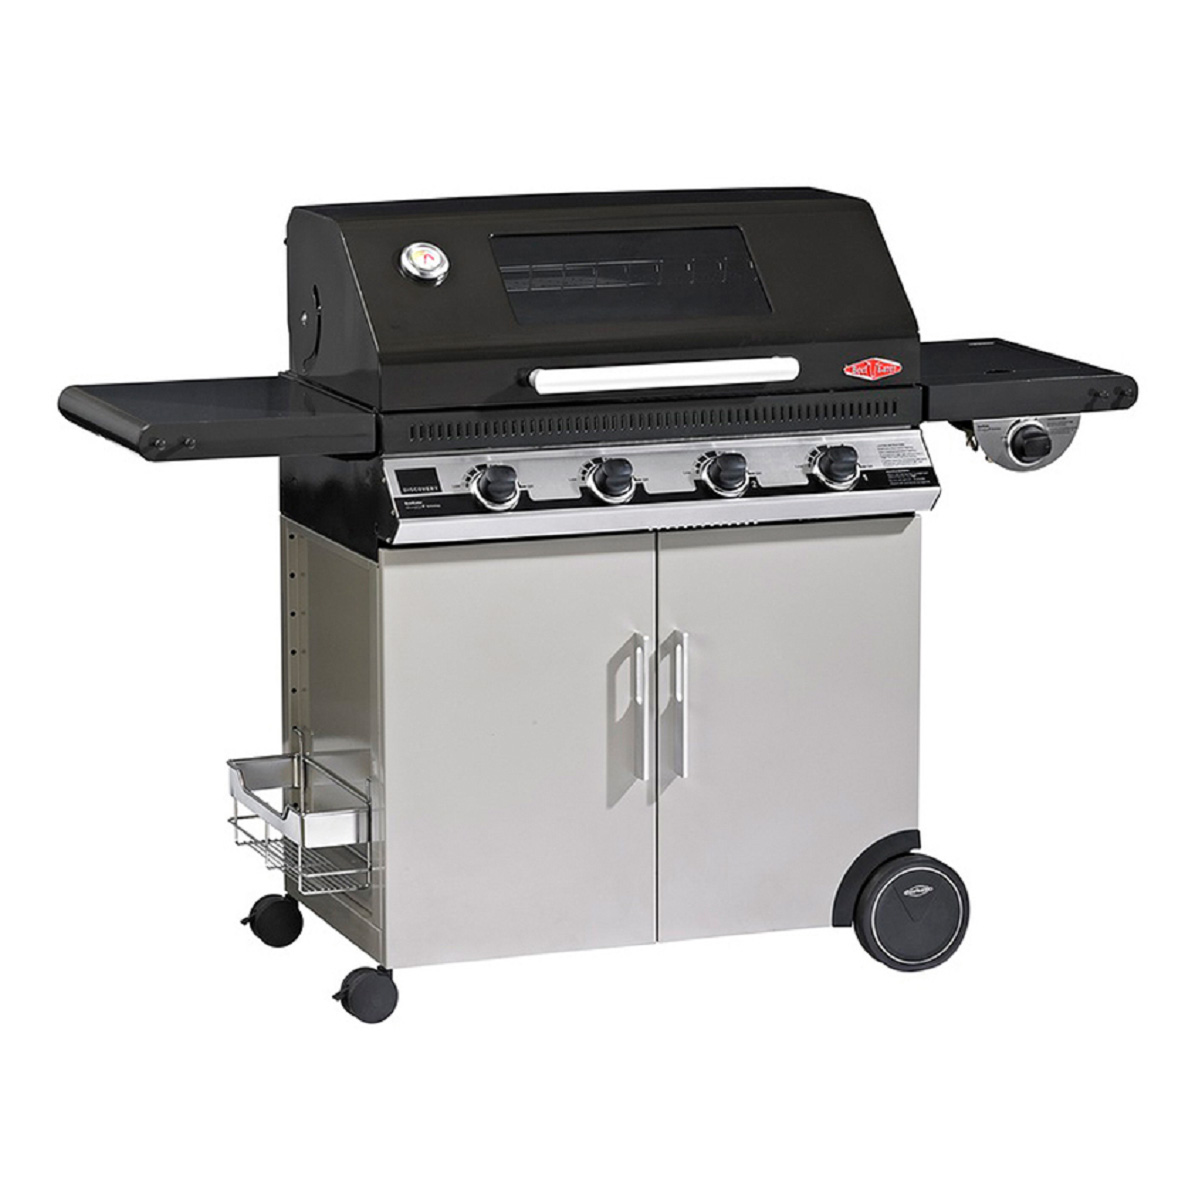 Beefeater 4 Burner Discovery 1100E Mobile BBQ 47842